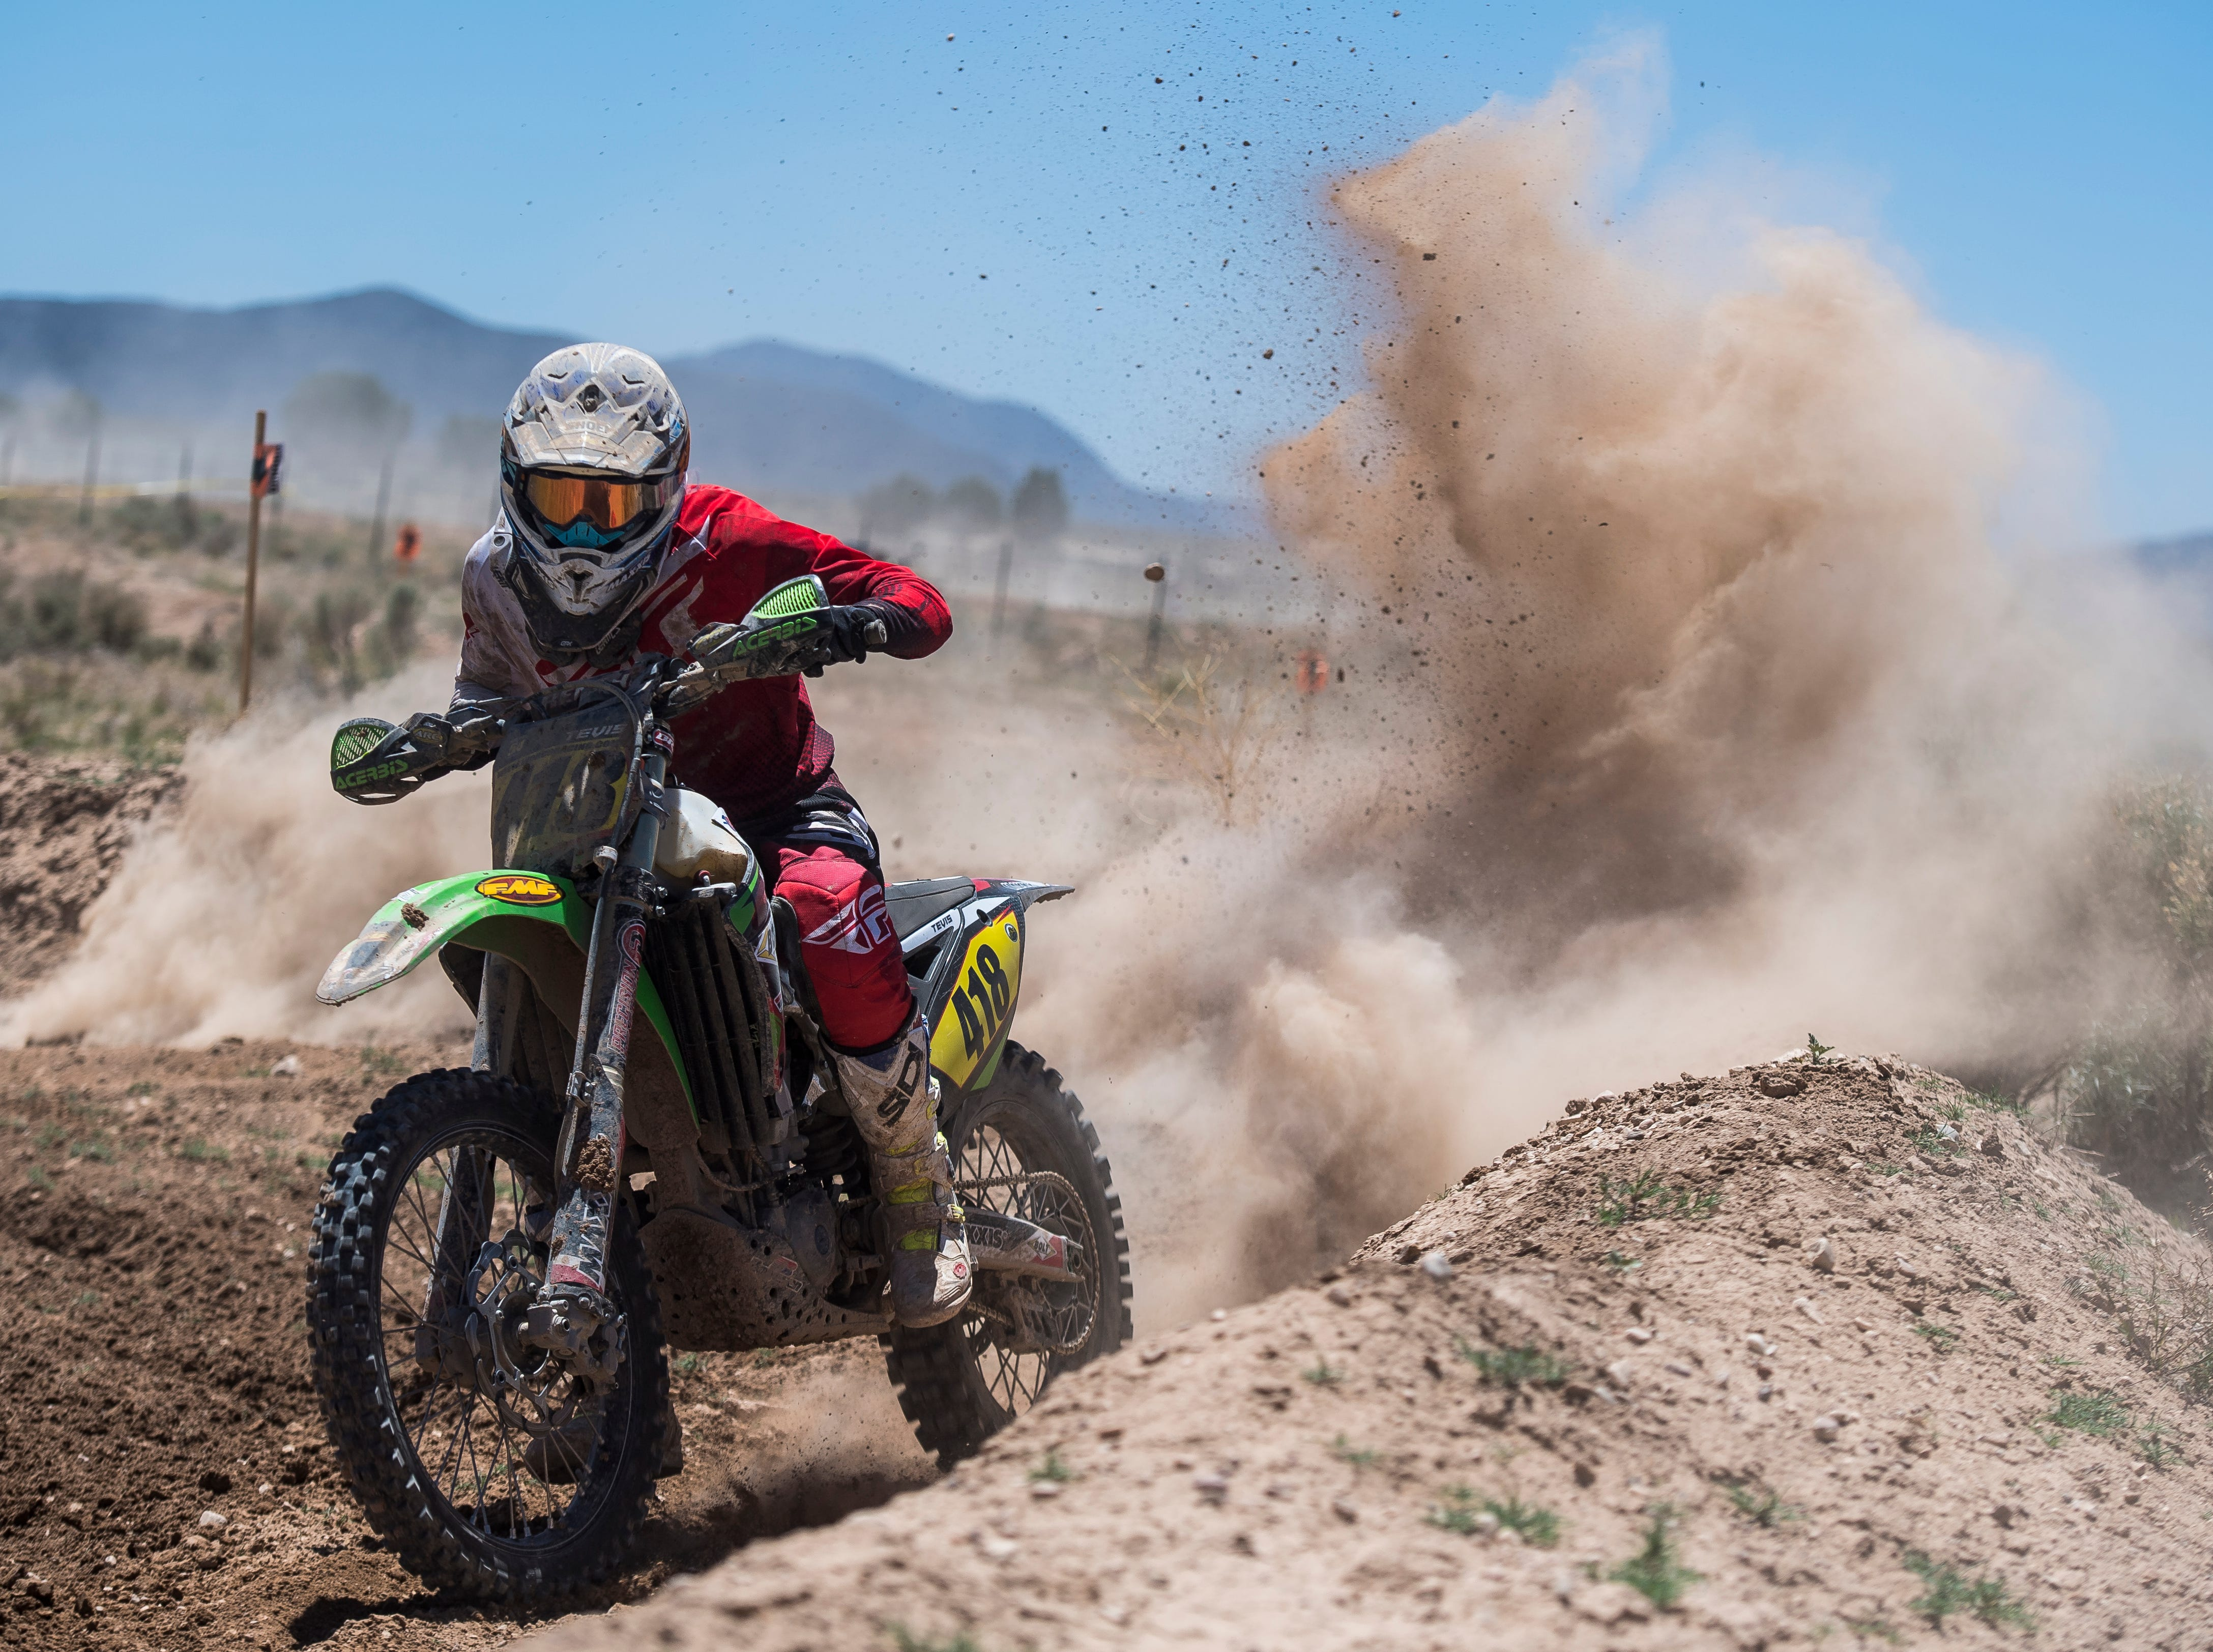 A racer compete during practice day of the World Off-Road Championship Series at Iron Mine Raceway Friday, May 25, 2018. The races will run all weekend, and feature professional drivers of Motocross, ATV, and UTV.